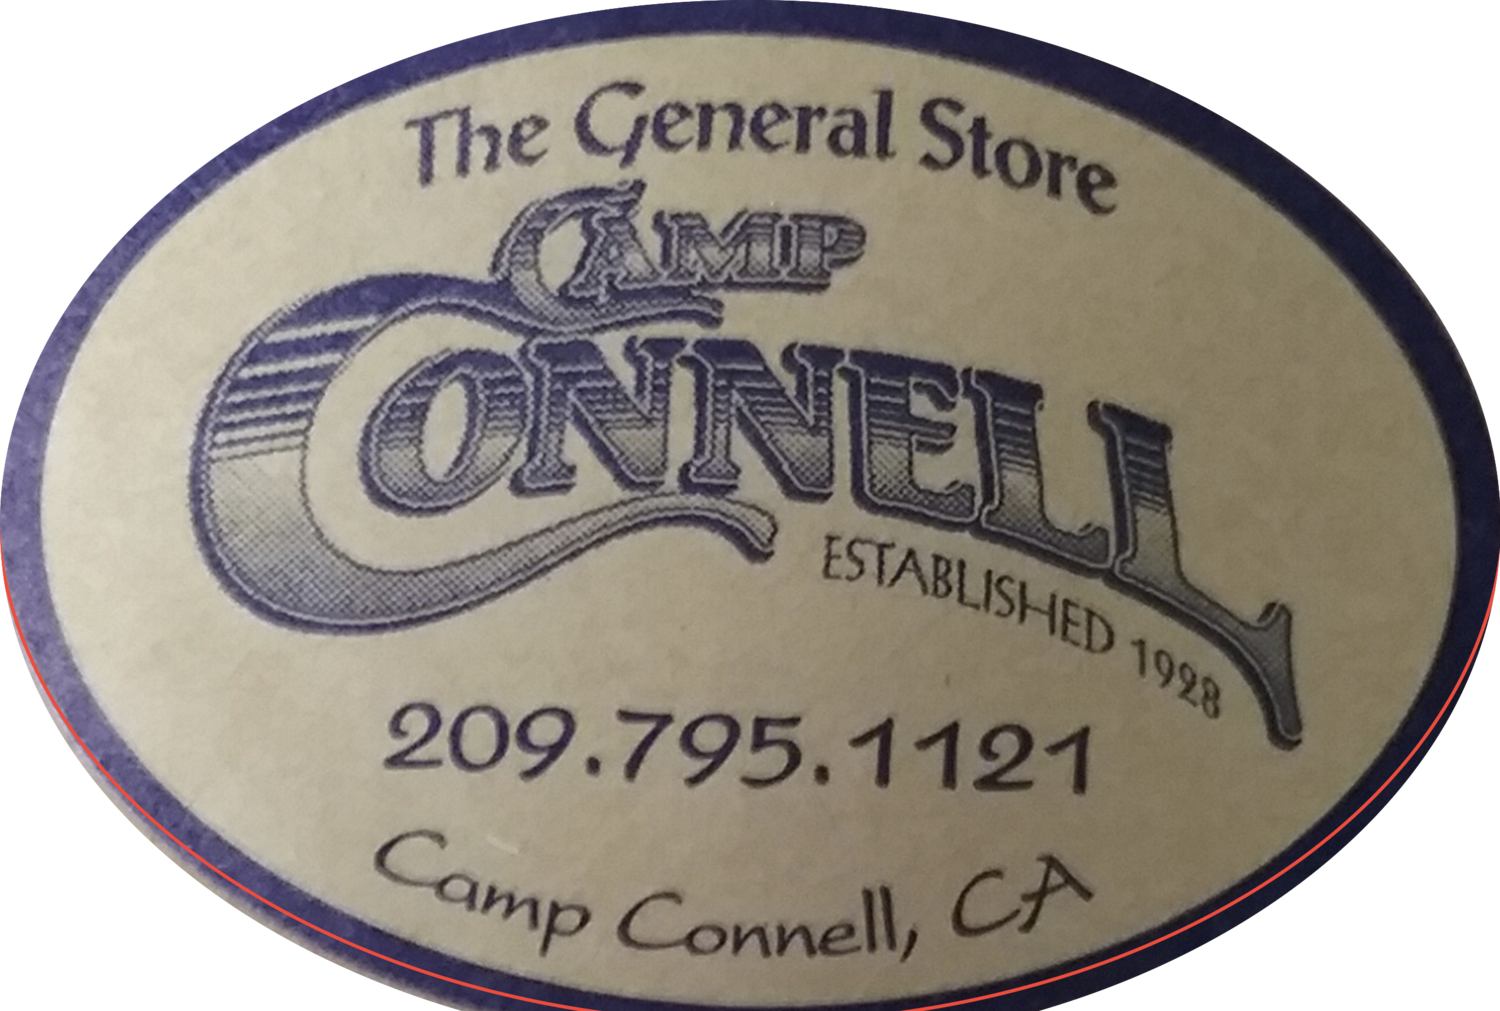 Camp Connell General Store